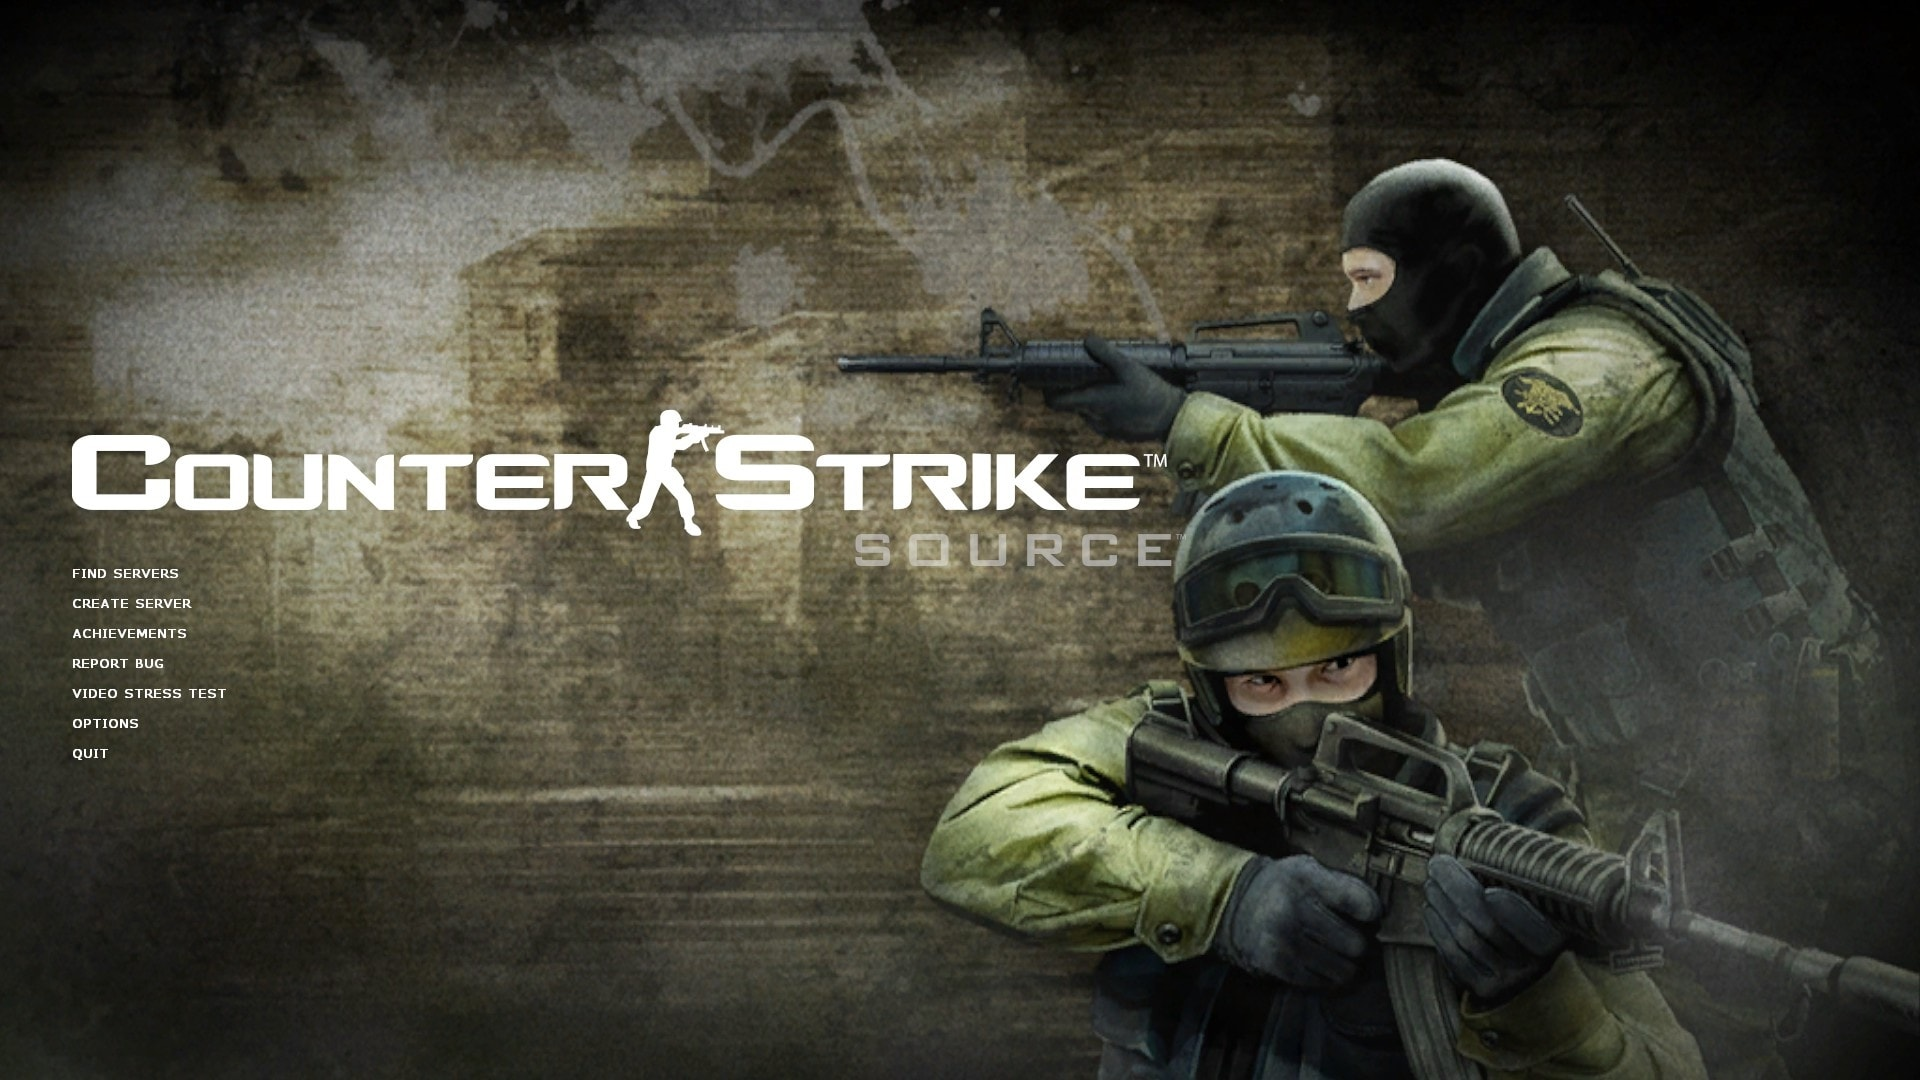 Counter strike source hd desktop wallpapers 7wallpapers counter strike source wallpapers counter strike source widescreen wallpapers voltagebd